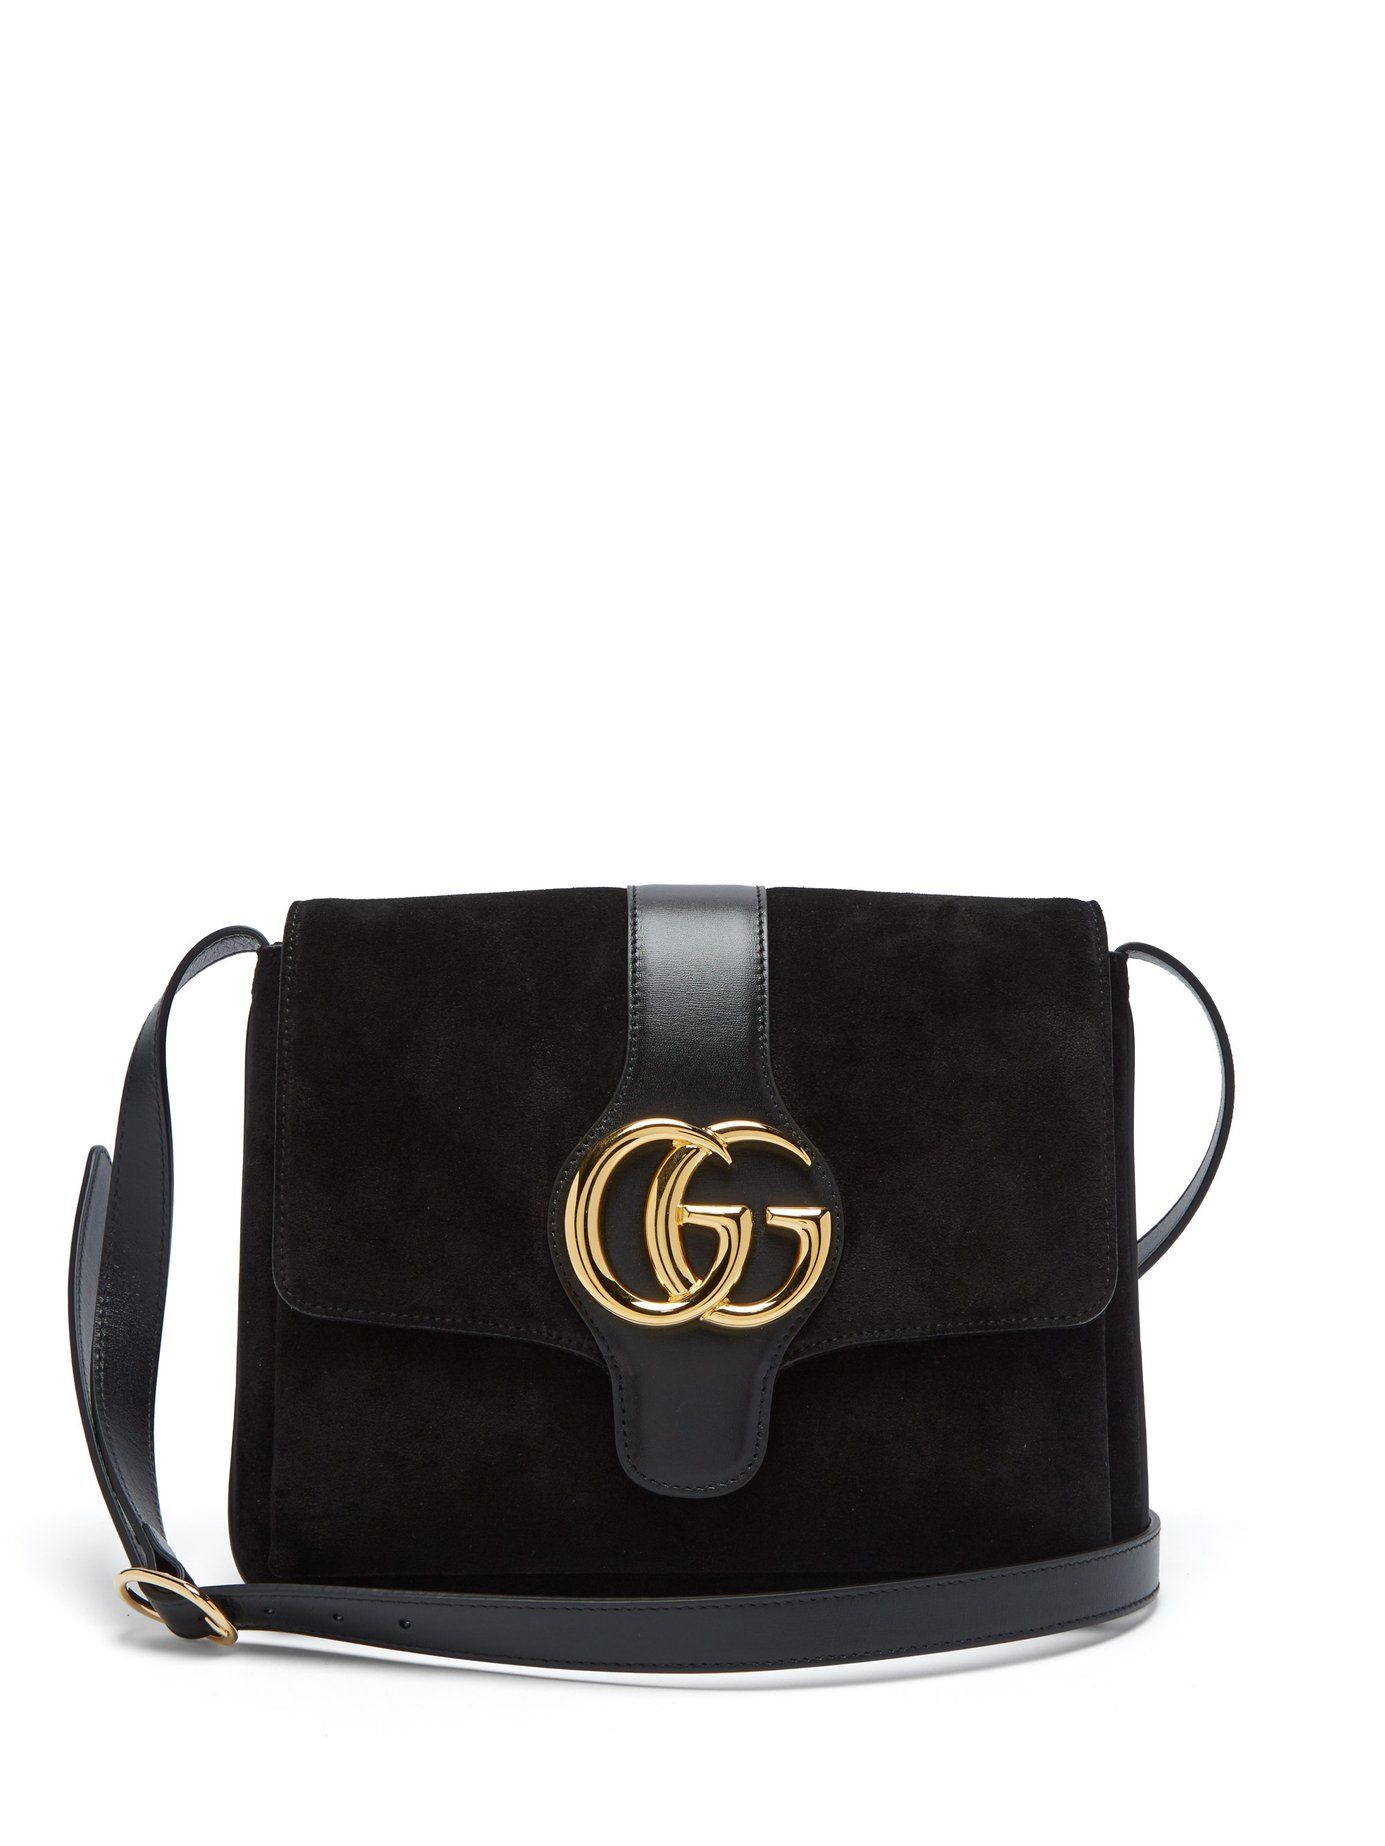 GG Arli suede and leather cross,body bag